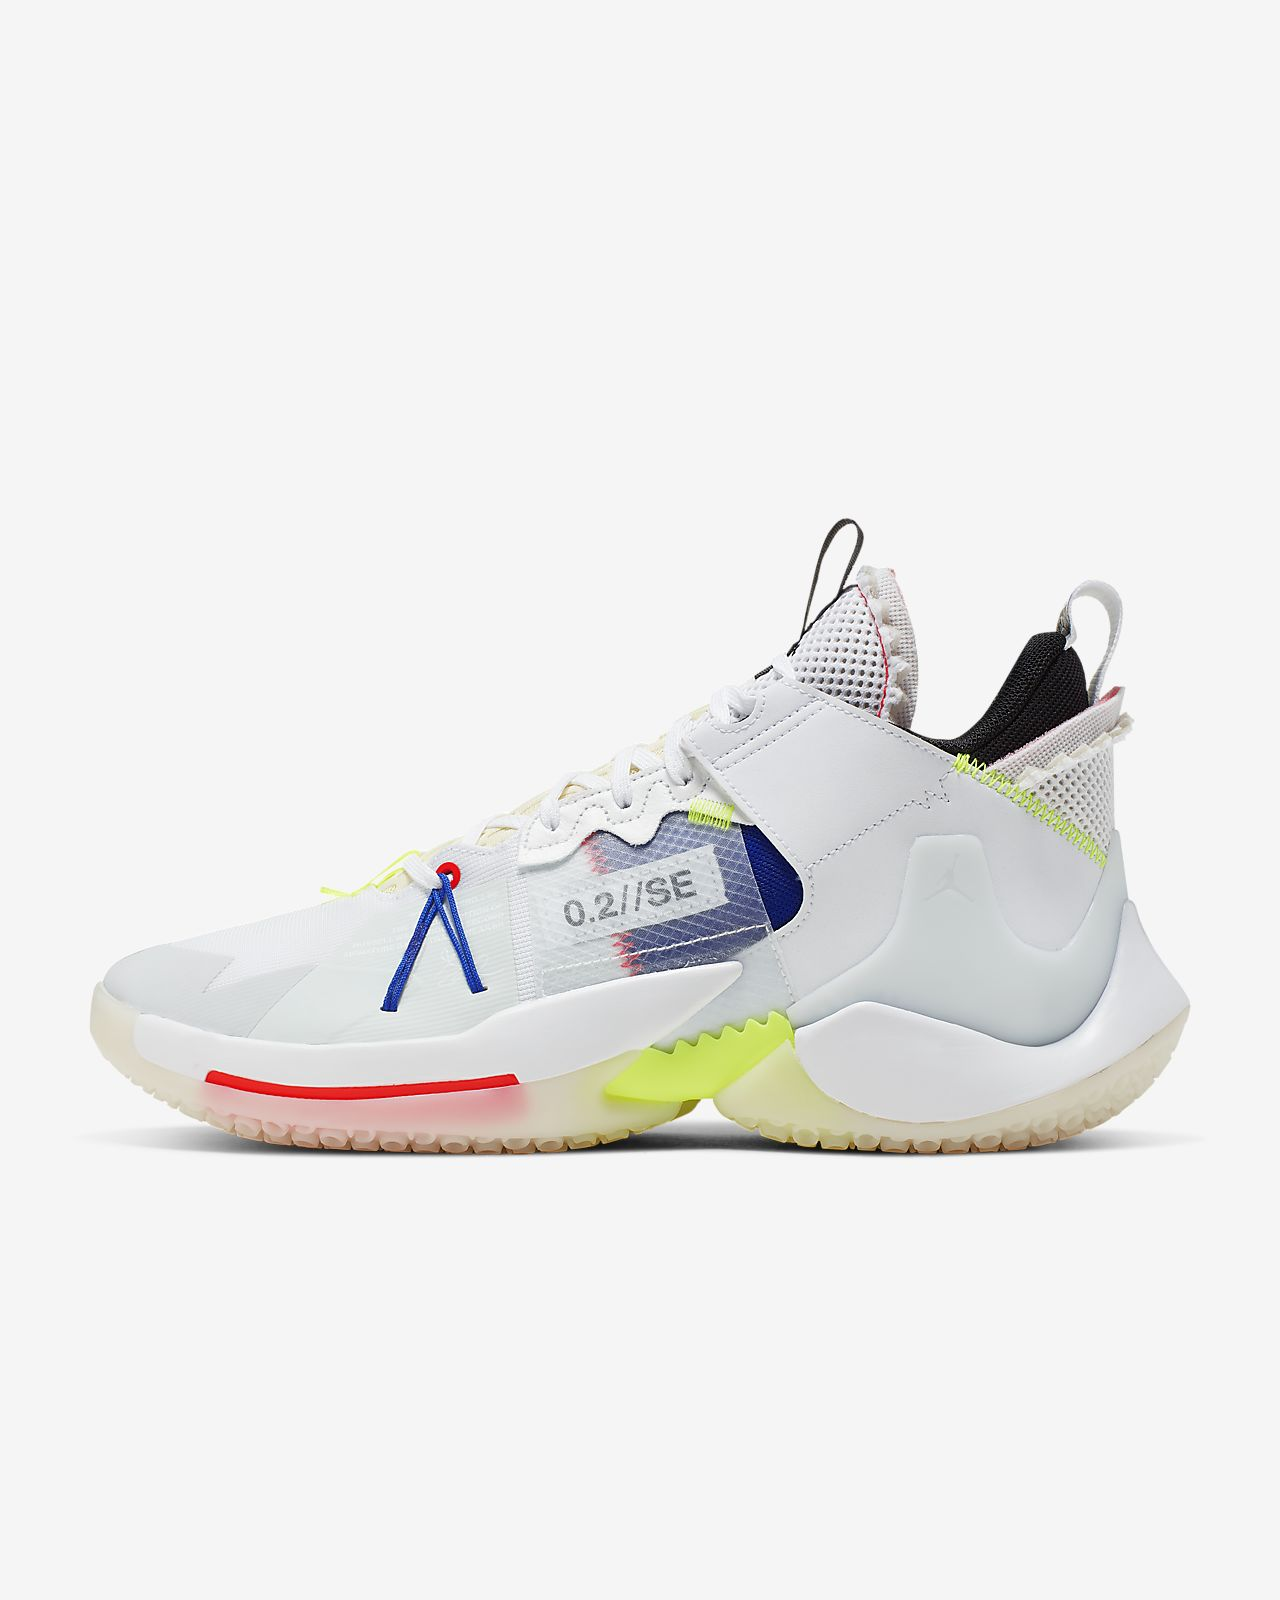 Jordan 'Why Not?' Zer0.2 SE Men's Basketball Shoe